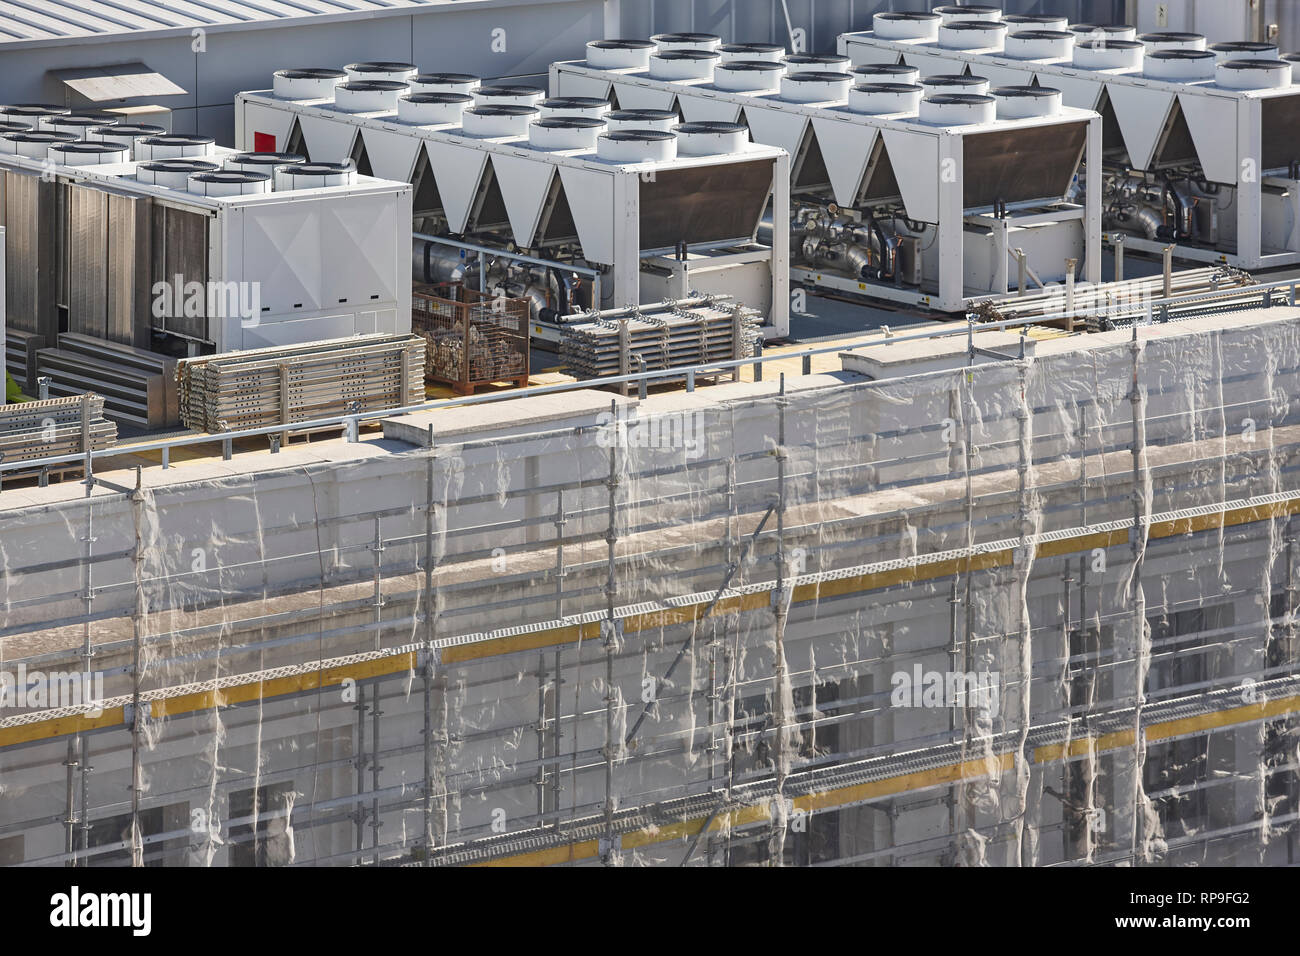 Air conditioner compressors on a building rooftop under construction. Industrial Stock Photo